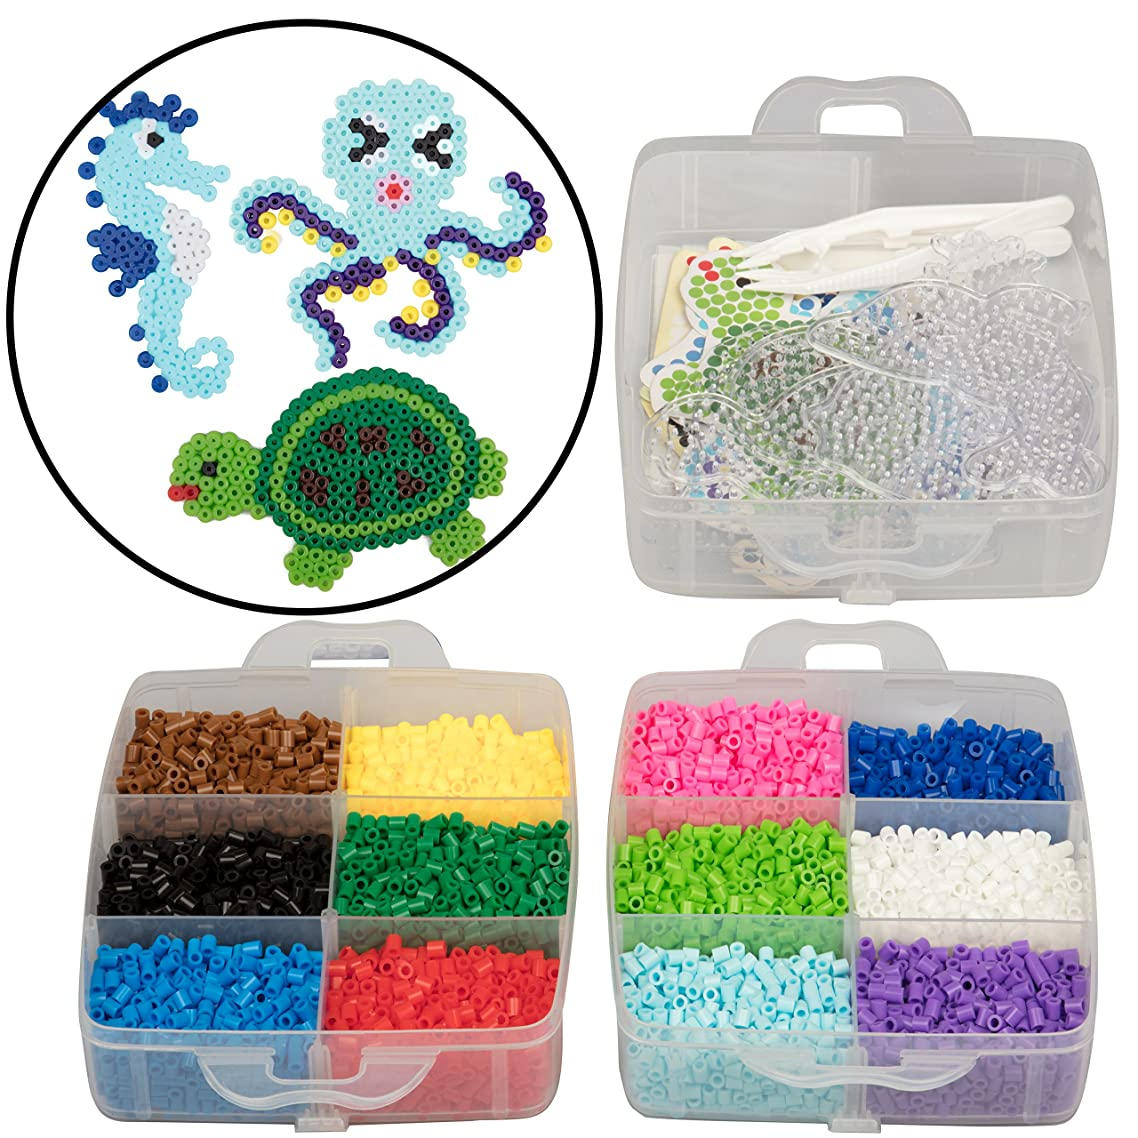 8,000pc Fuse Bead Super Kit w/Sea Animal Pegboards and Templates - 12 Colors, 6 Peg Boards, Tweezers, Ironing Paper, Case - Works with Perler Beads